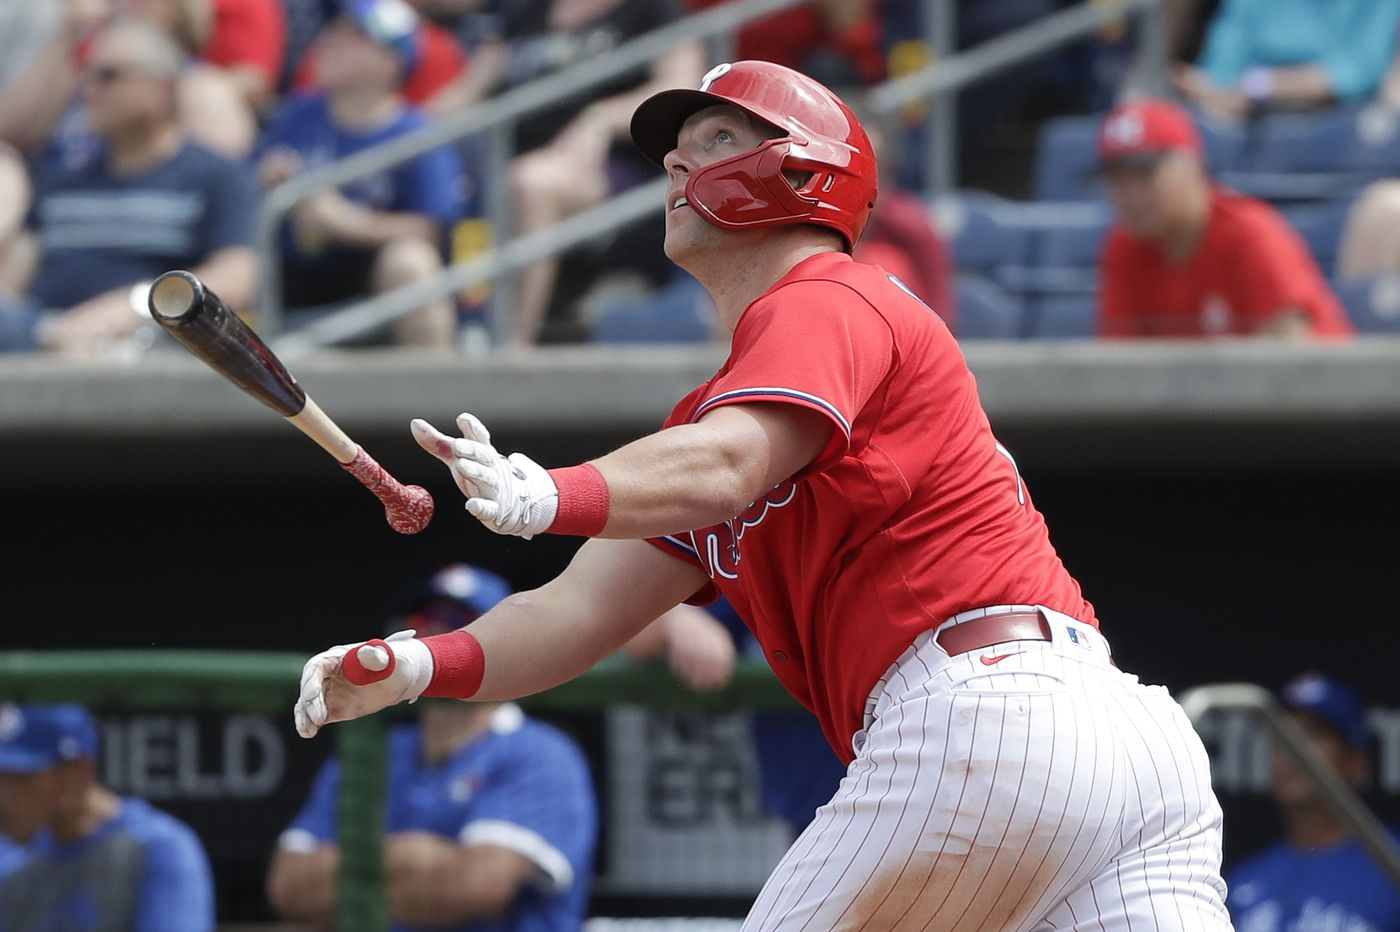 Rhys Hoskins to represent Phillies in 30-player MLB The Show video game league